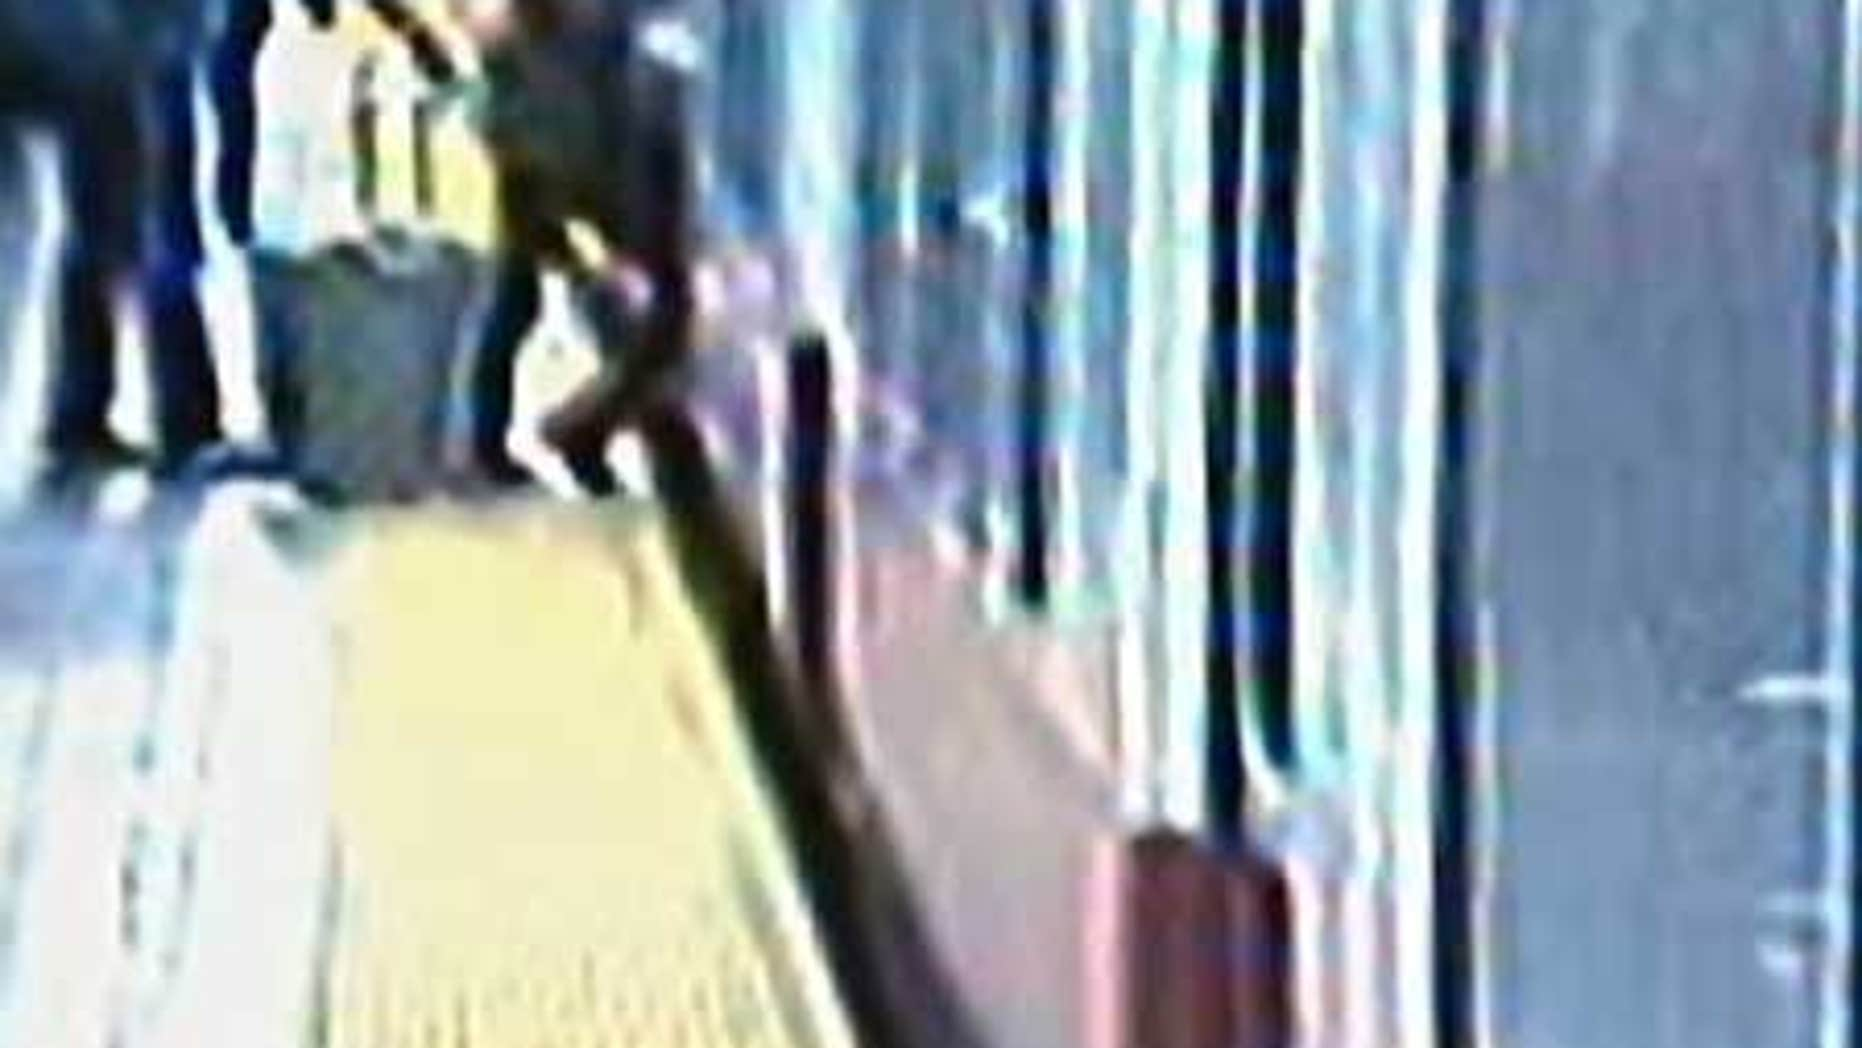 Woman's bag gets stuck trying to get on an MBTA train in Boston.